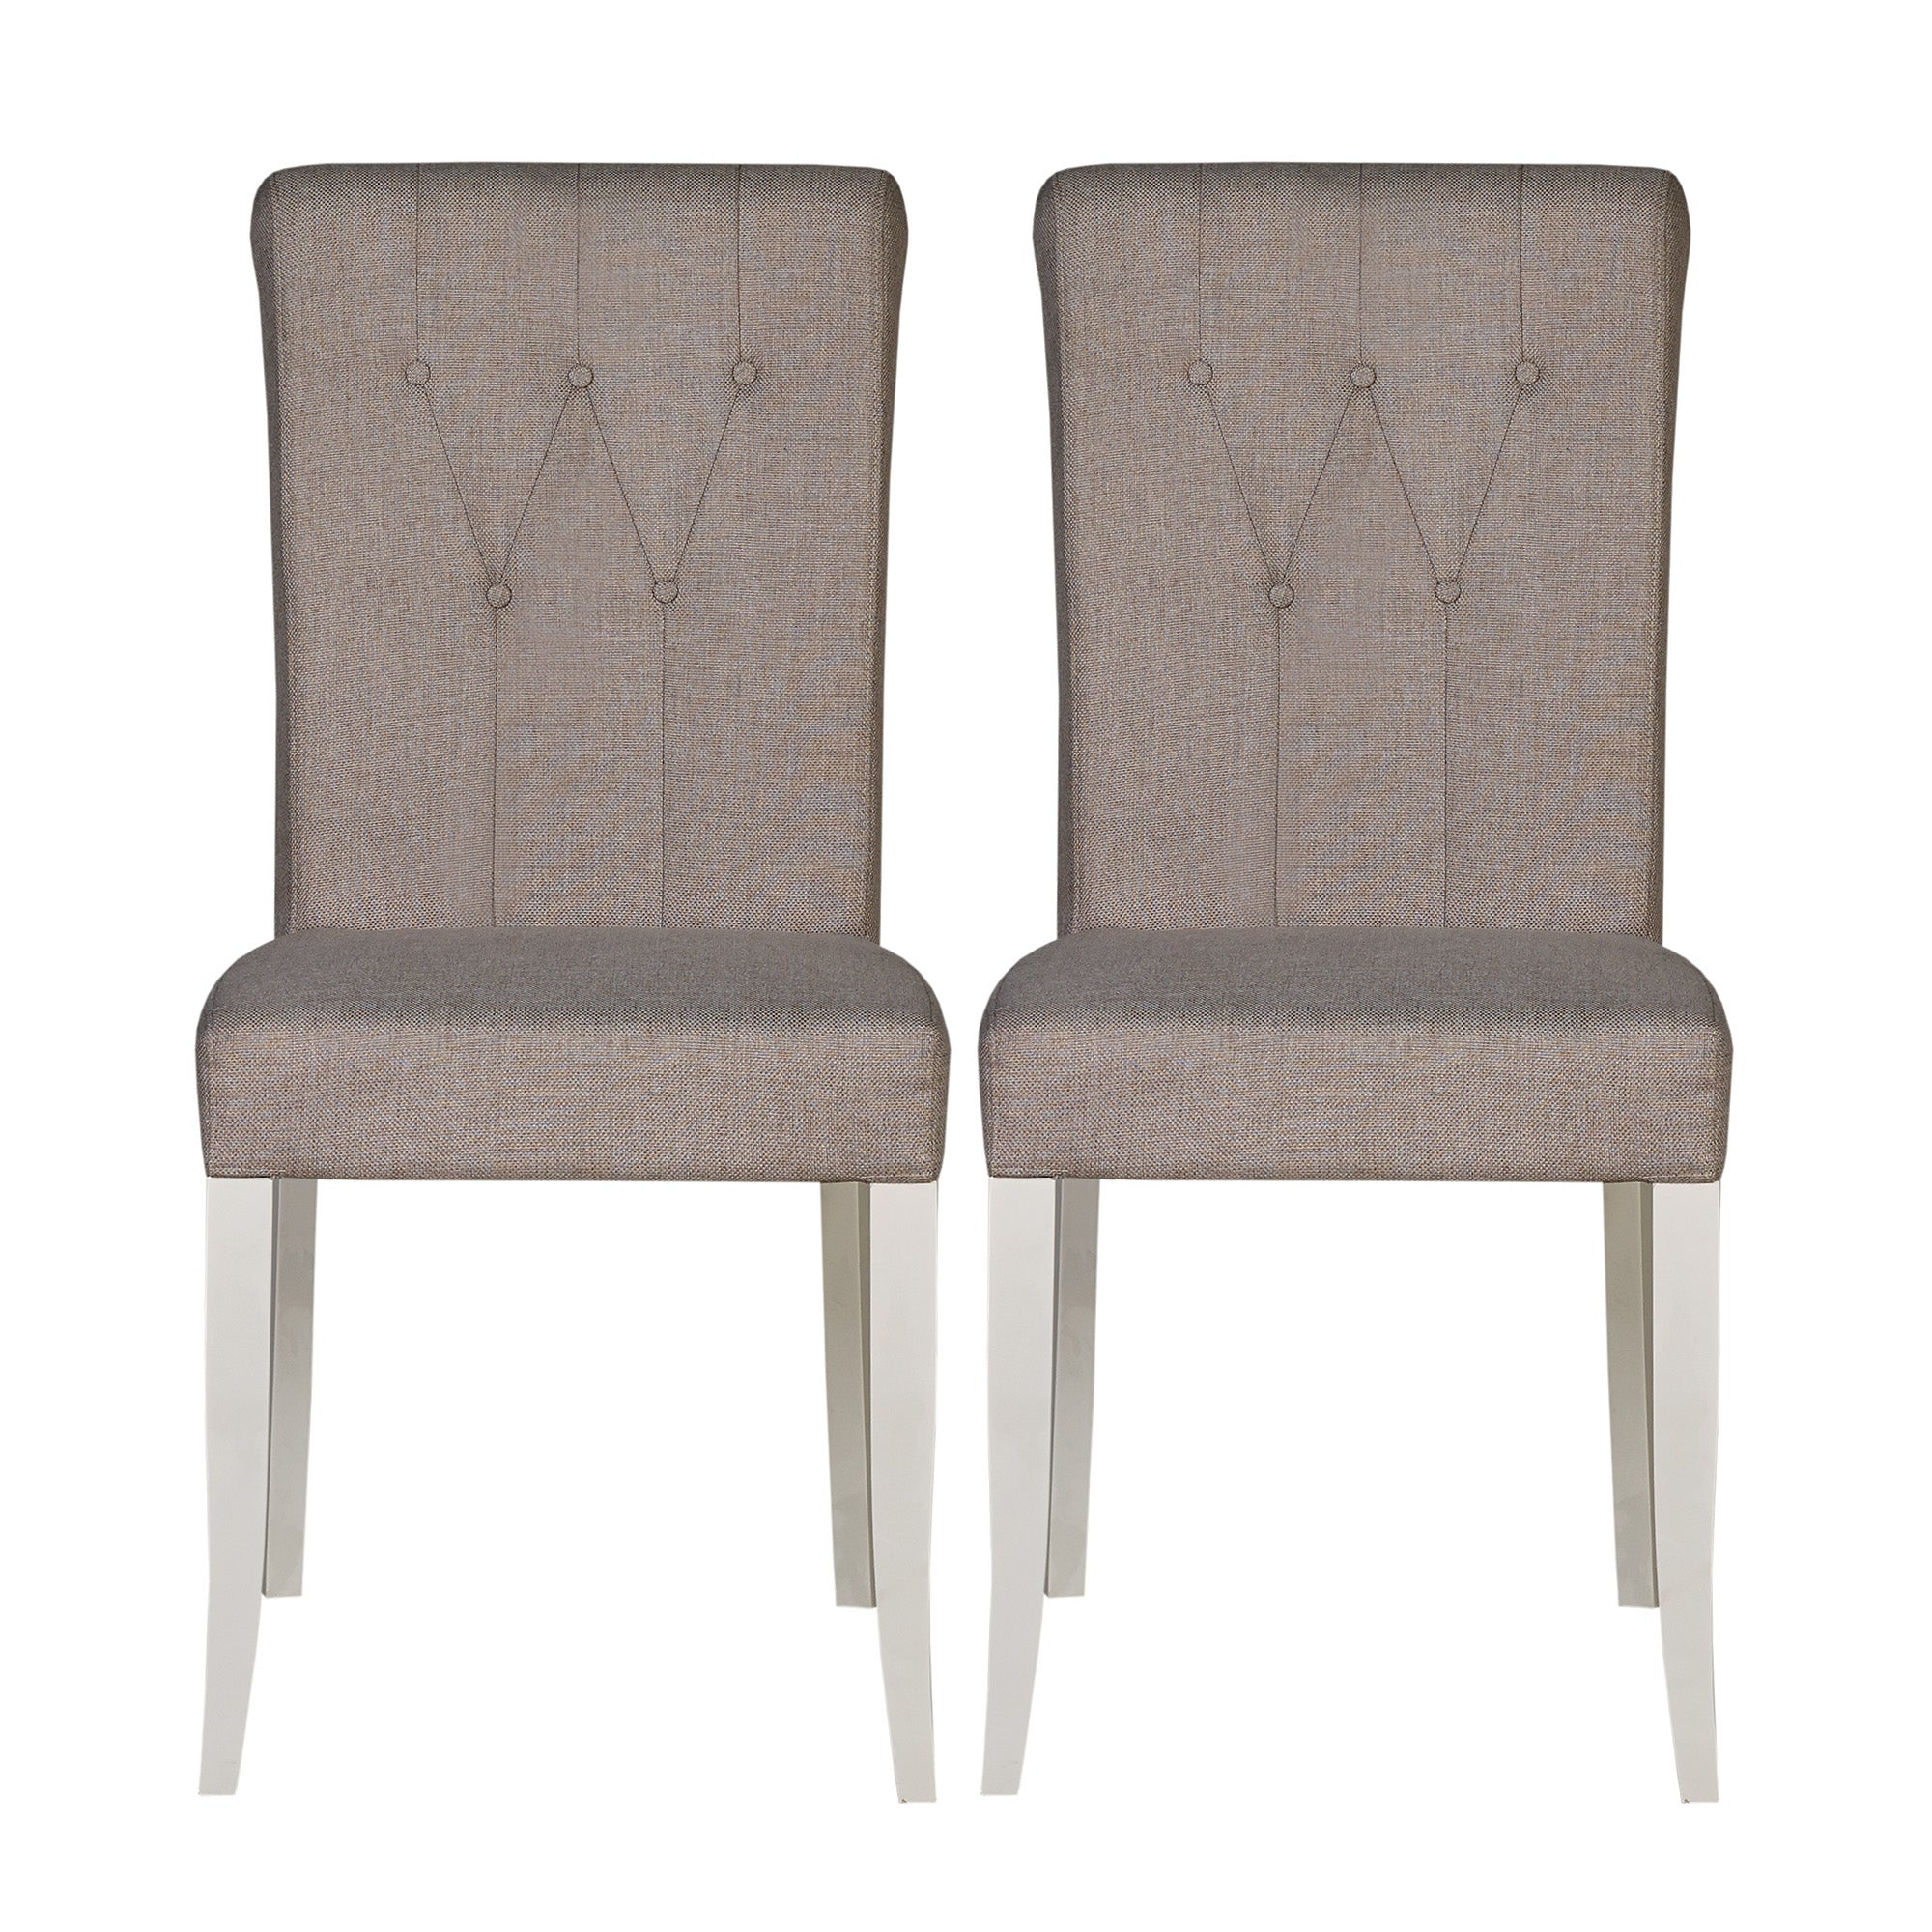 Eaton Soft Grey Button Back Pair of Upholstered Dining Chairs